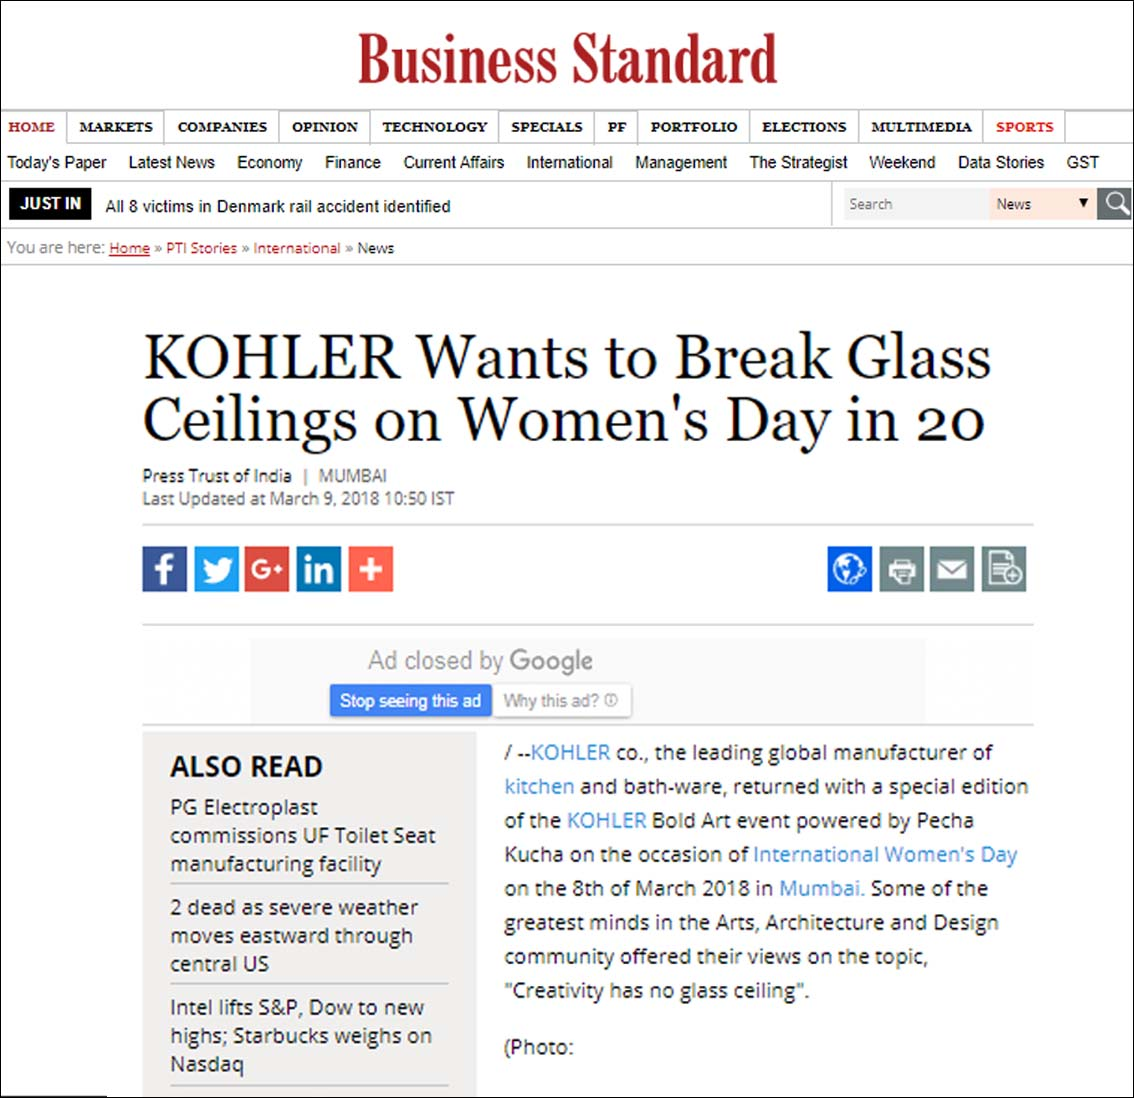 KOHLER Wants to Break Glass Ceilings on Women's Day in 20, Business Standard - March 2018